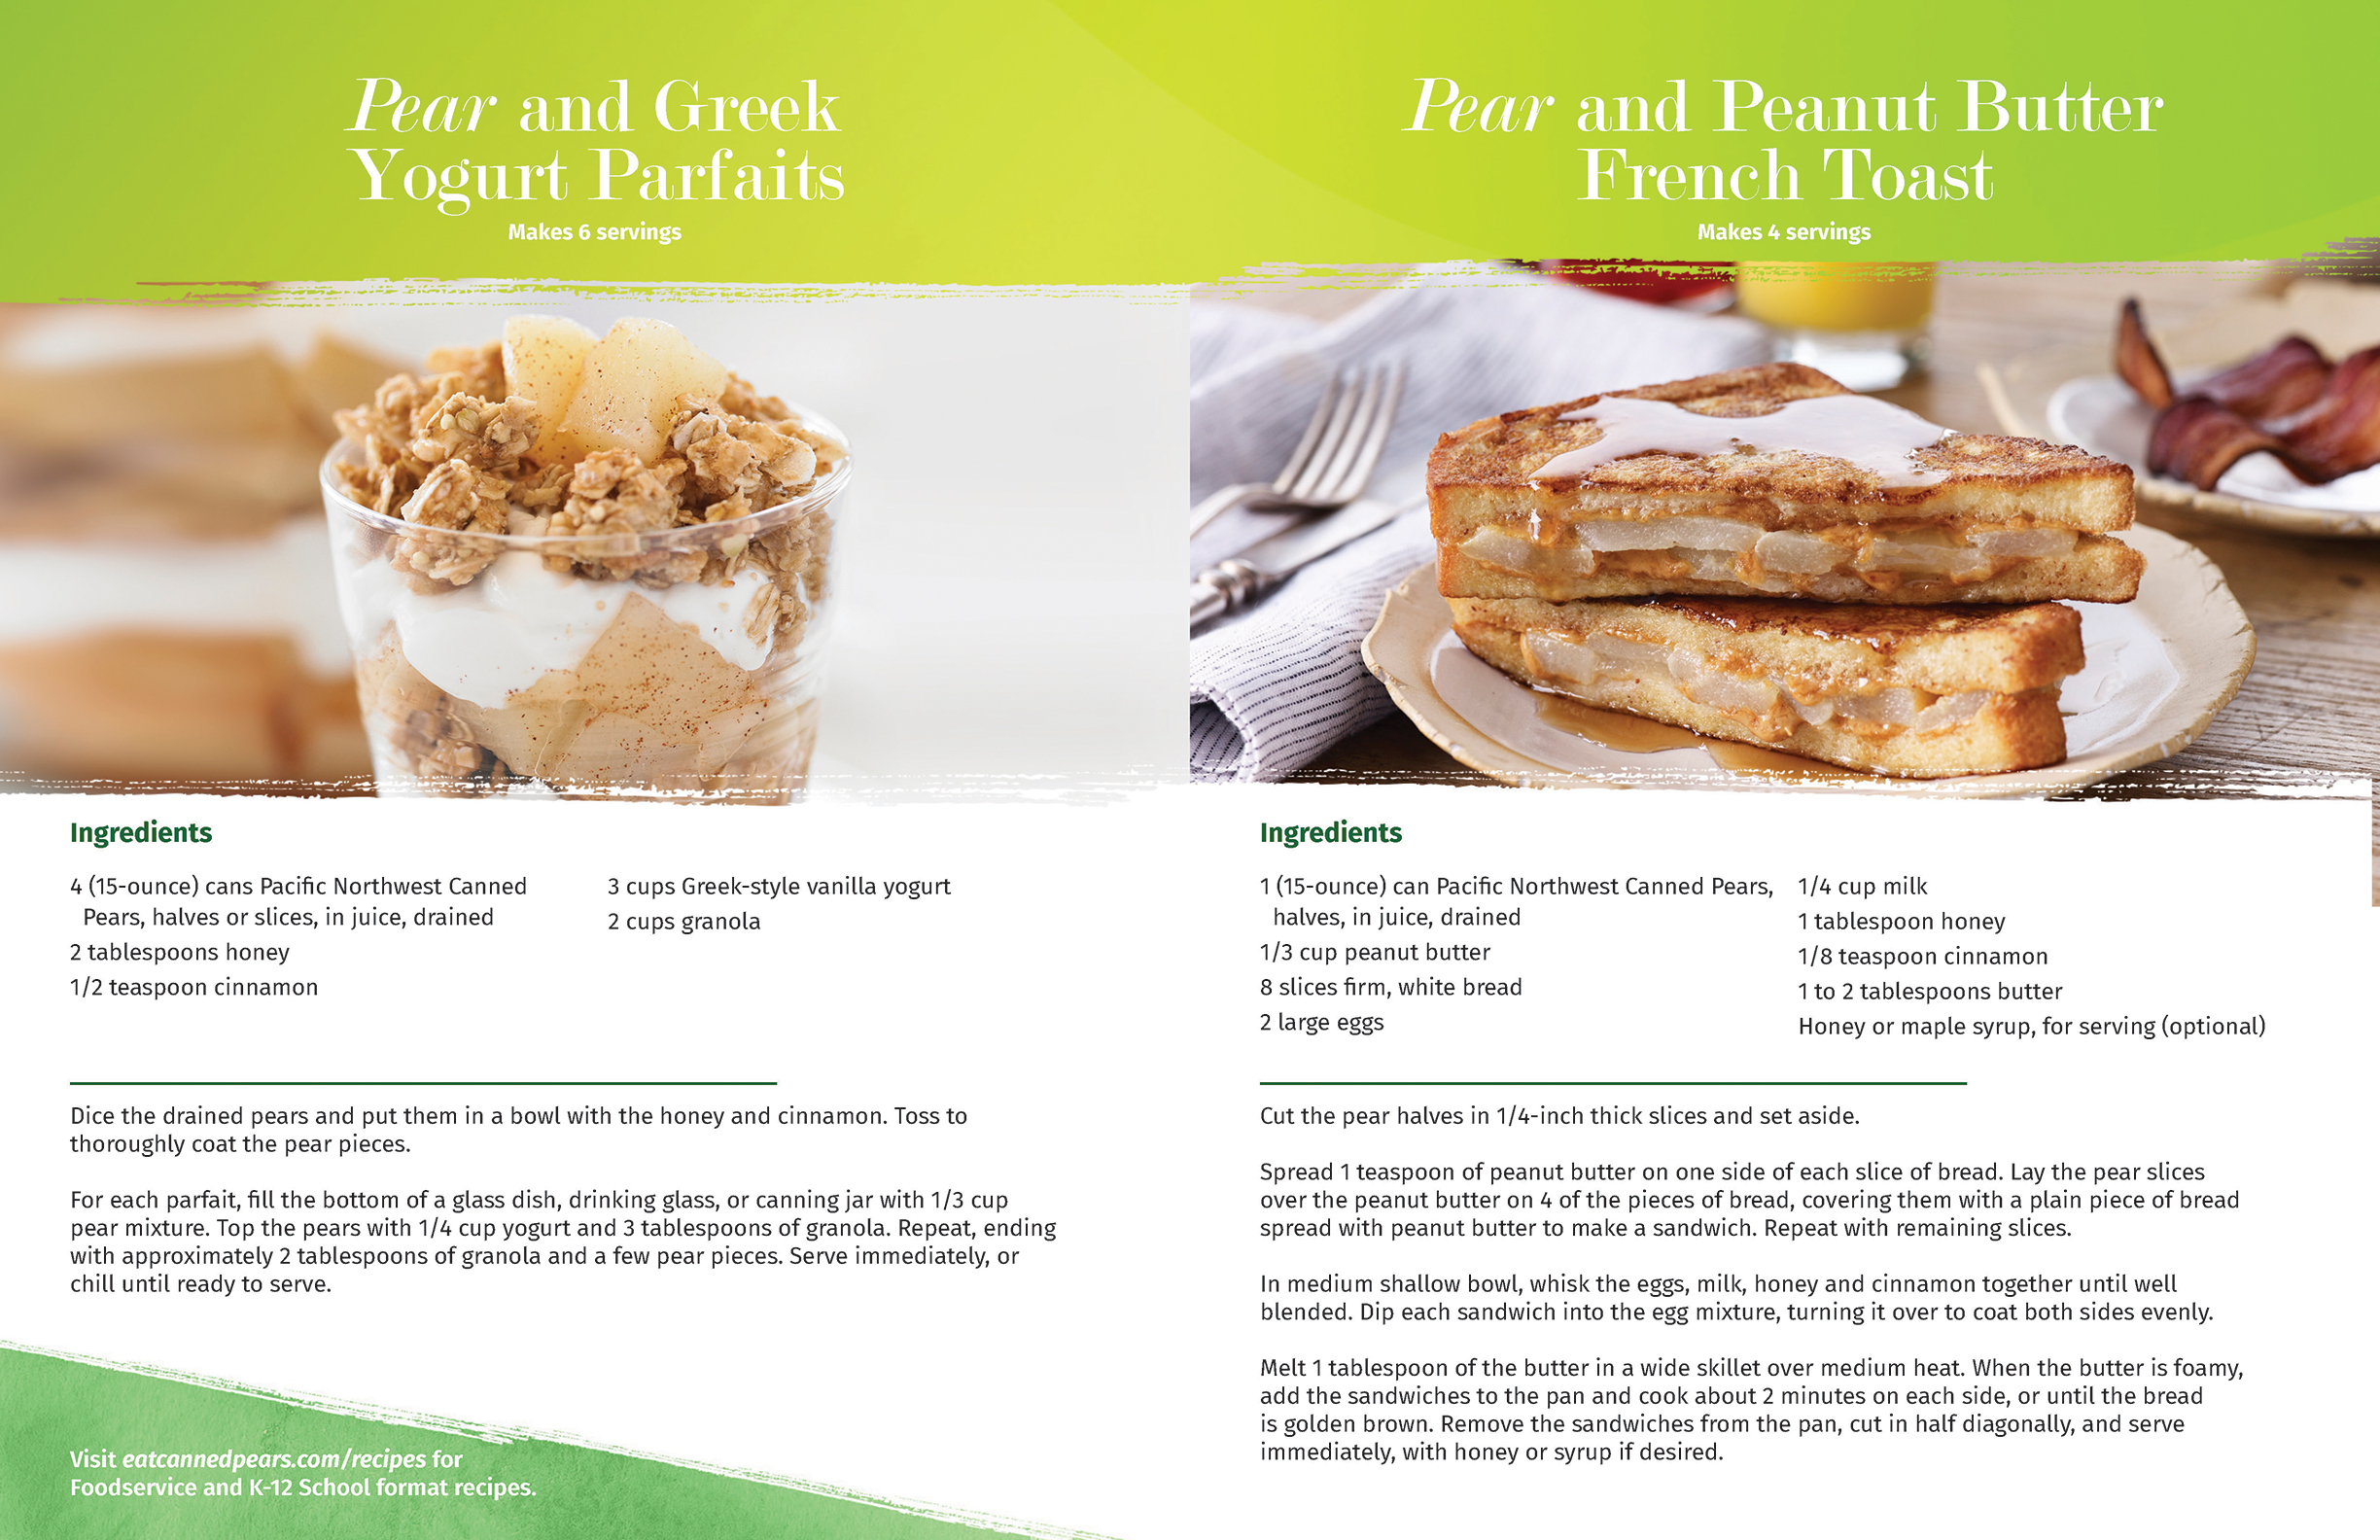 pncps-recipe-book-r2-v6_Page_2.jpg